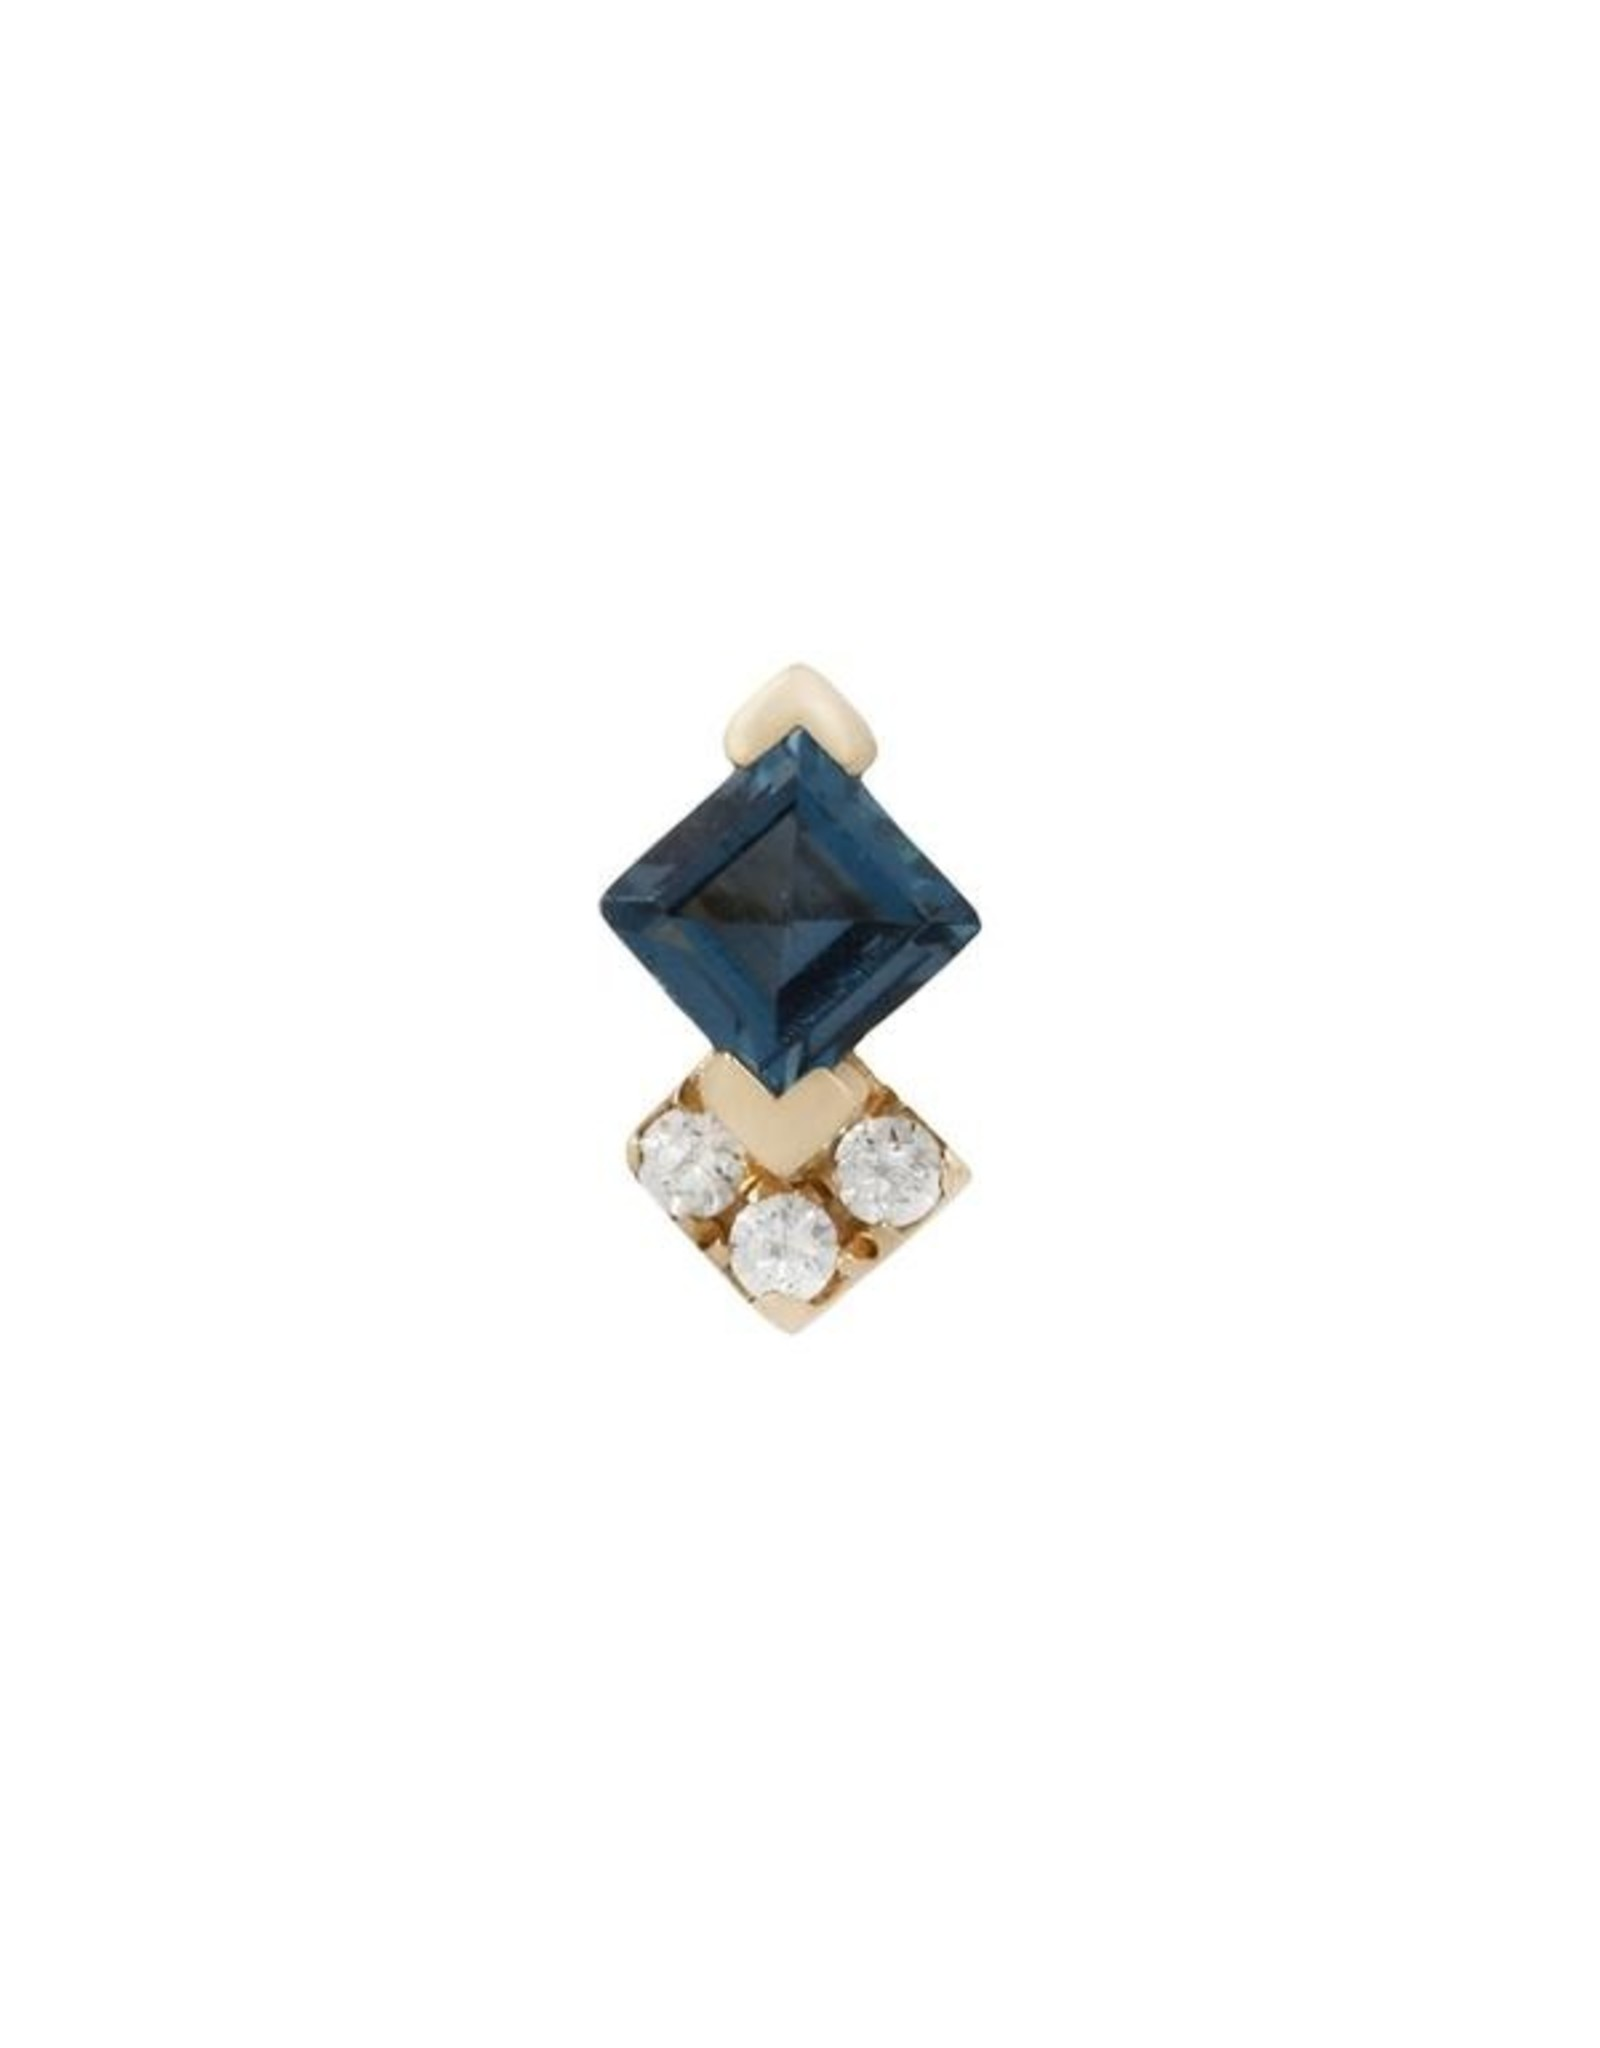 """Buddha Jewelry Organics Buddha Jewelry Organics """"Vivienne"""" press-fit end with London blue topaz and CZ"""